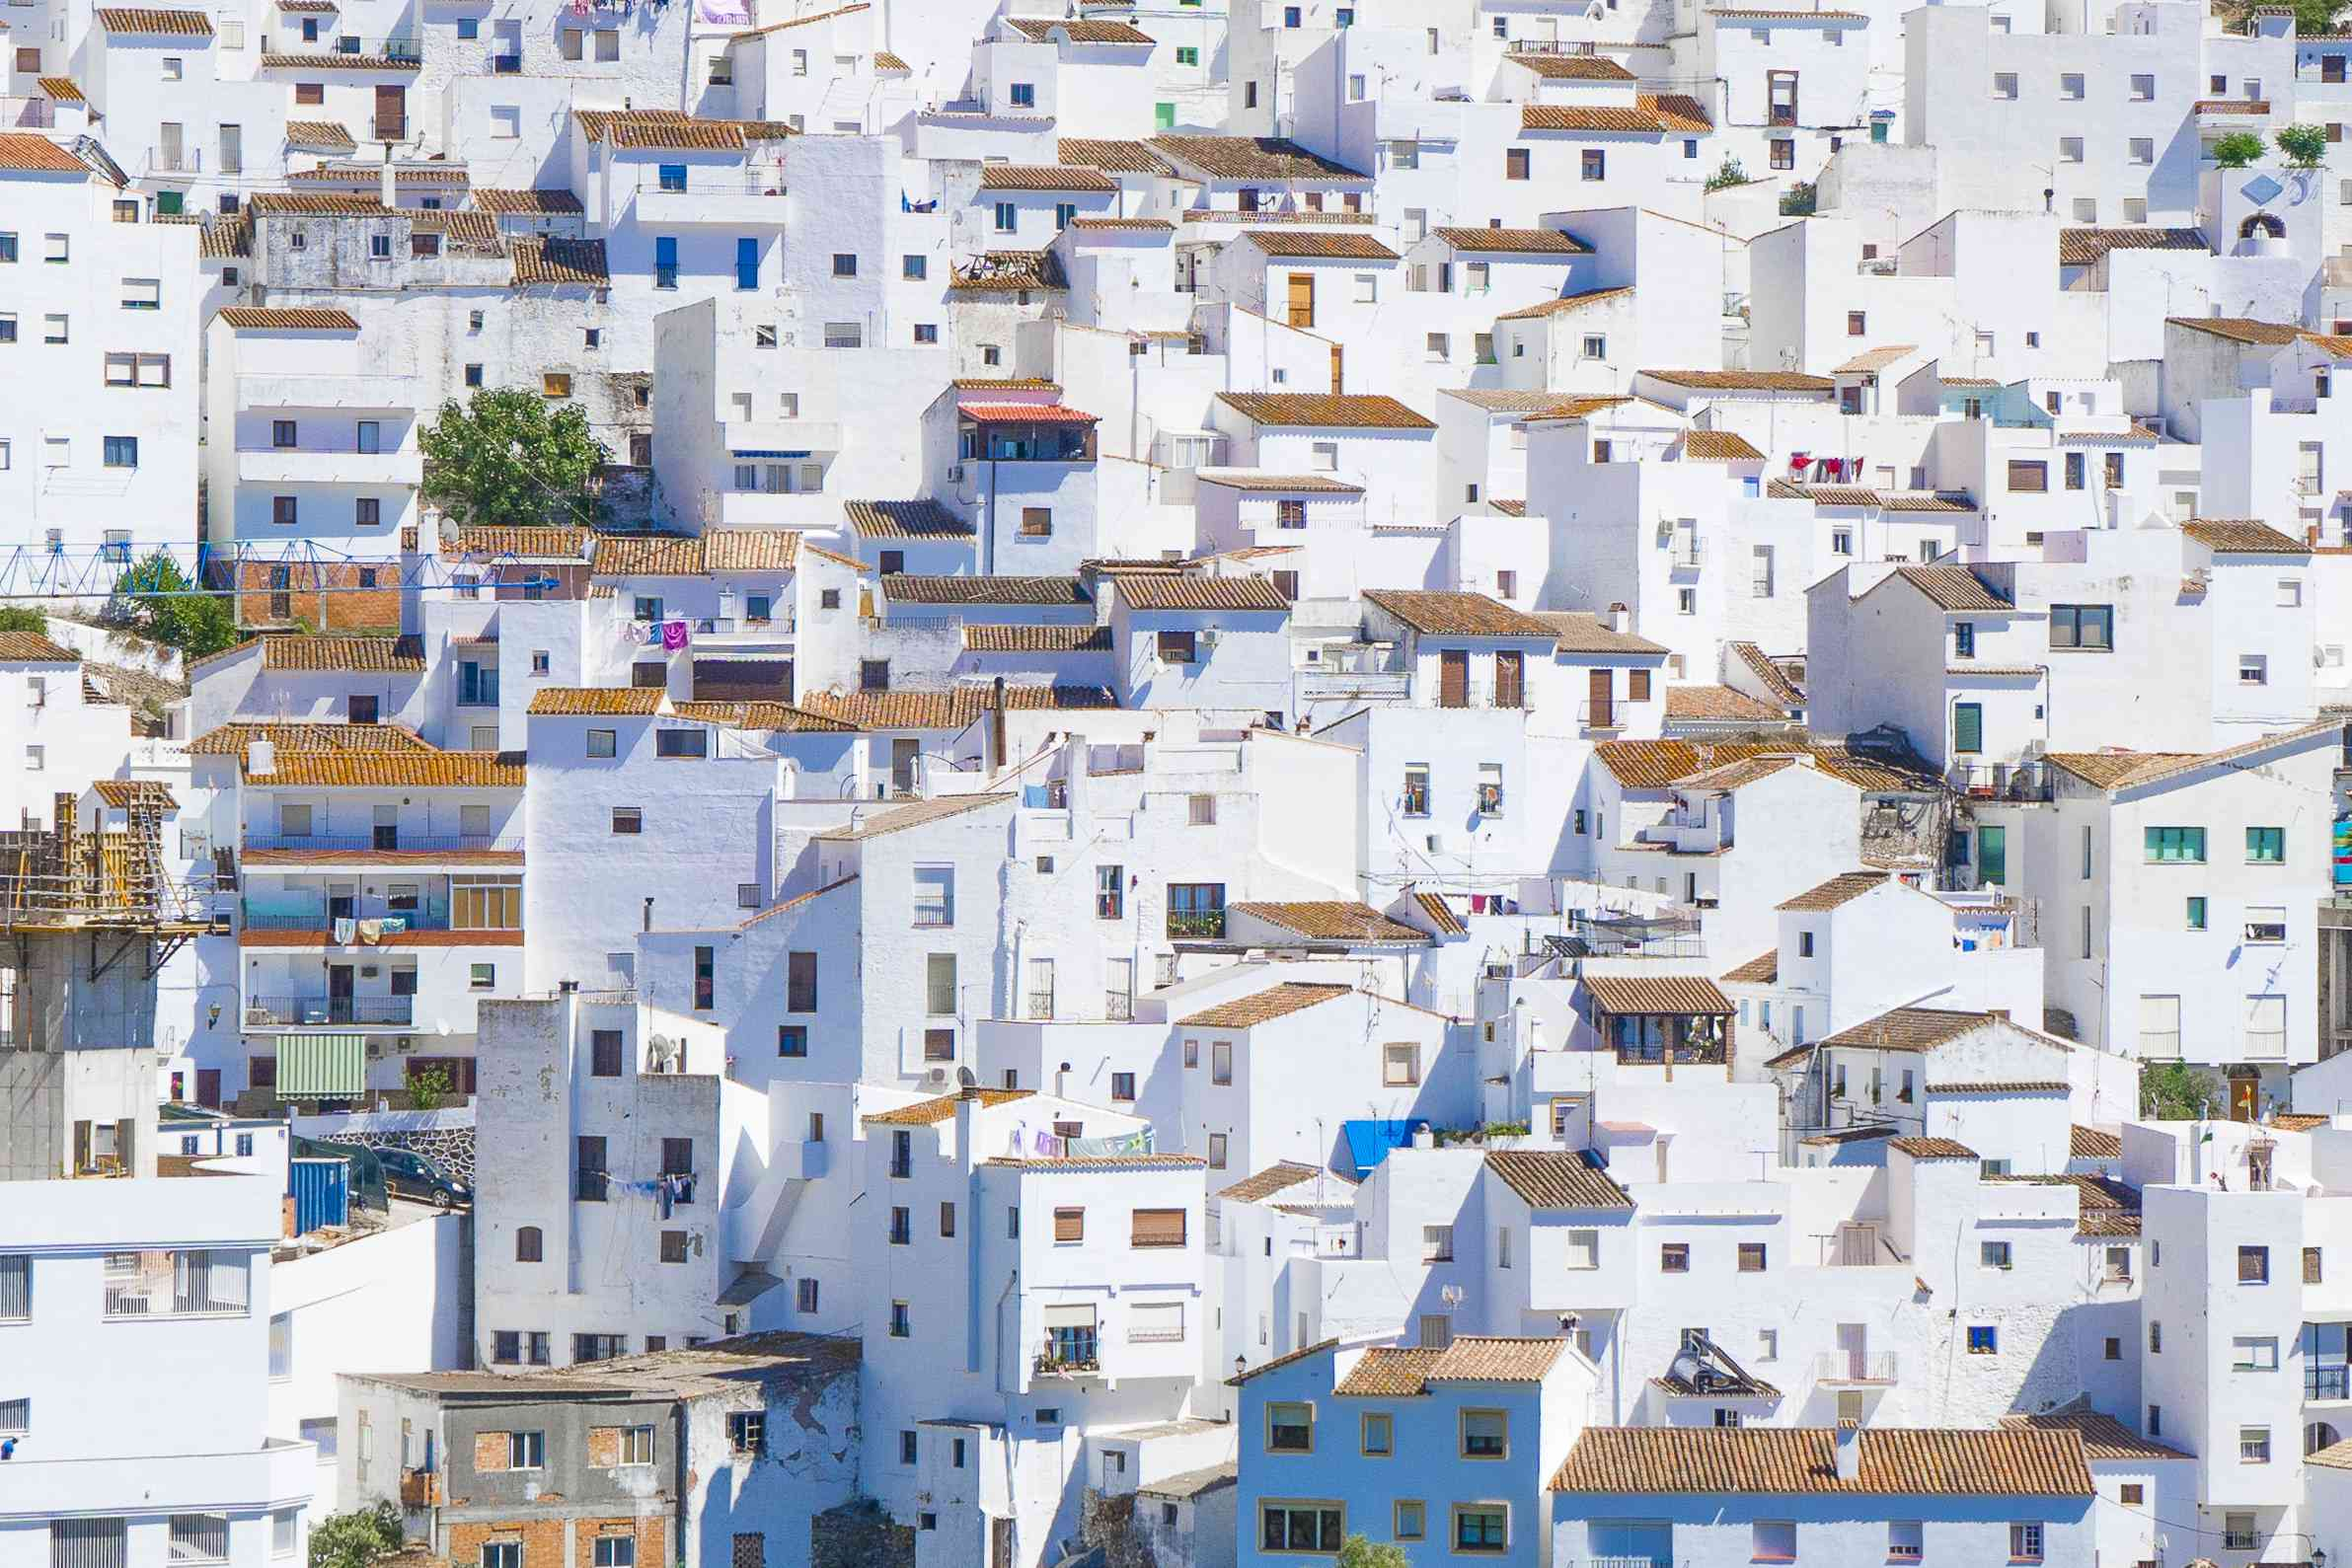 High Angle View Of White Houses In Town, Lebrija, Spain